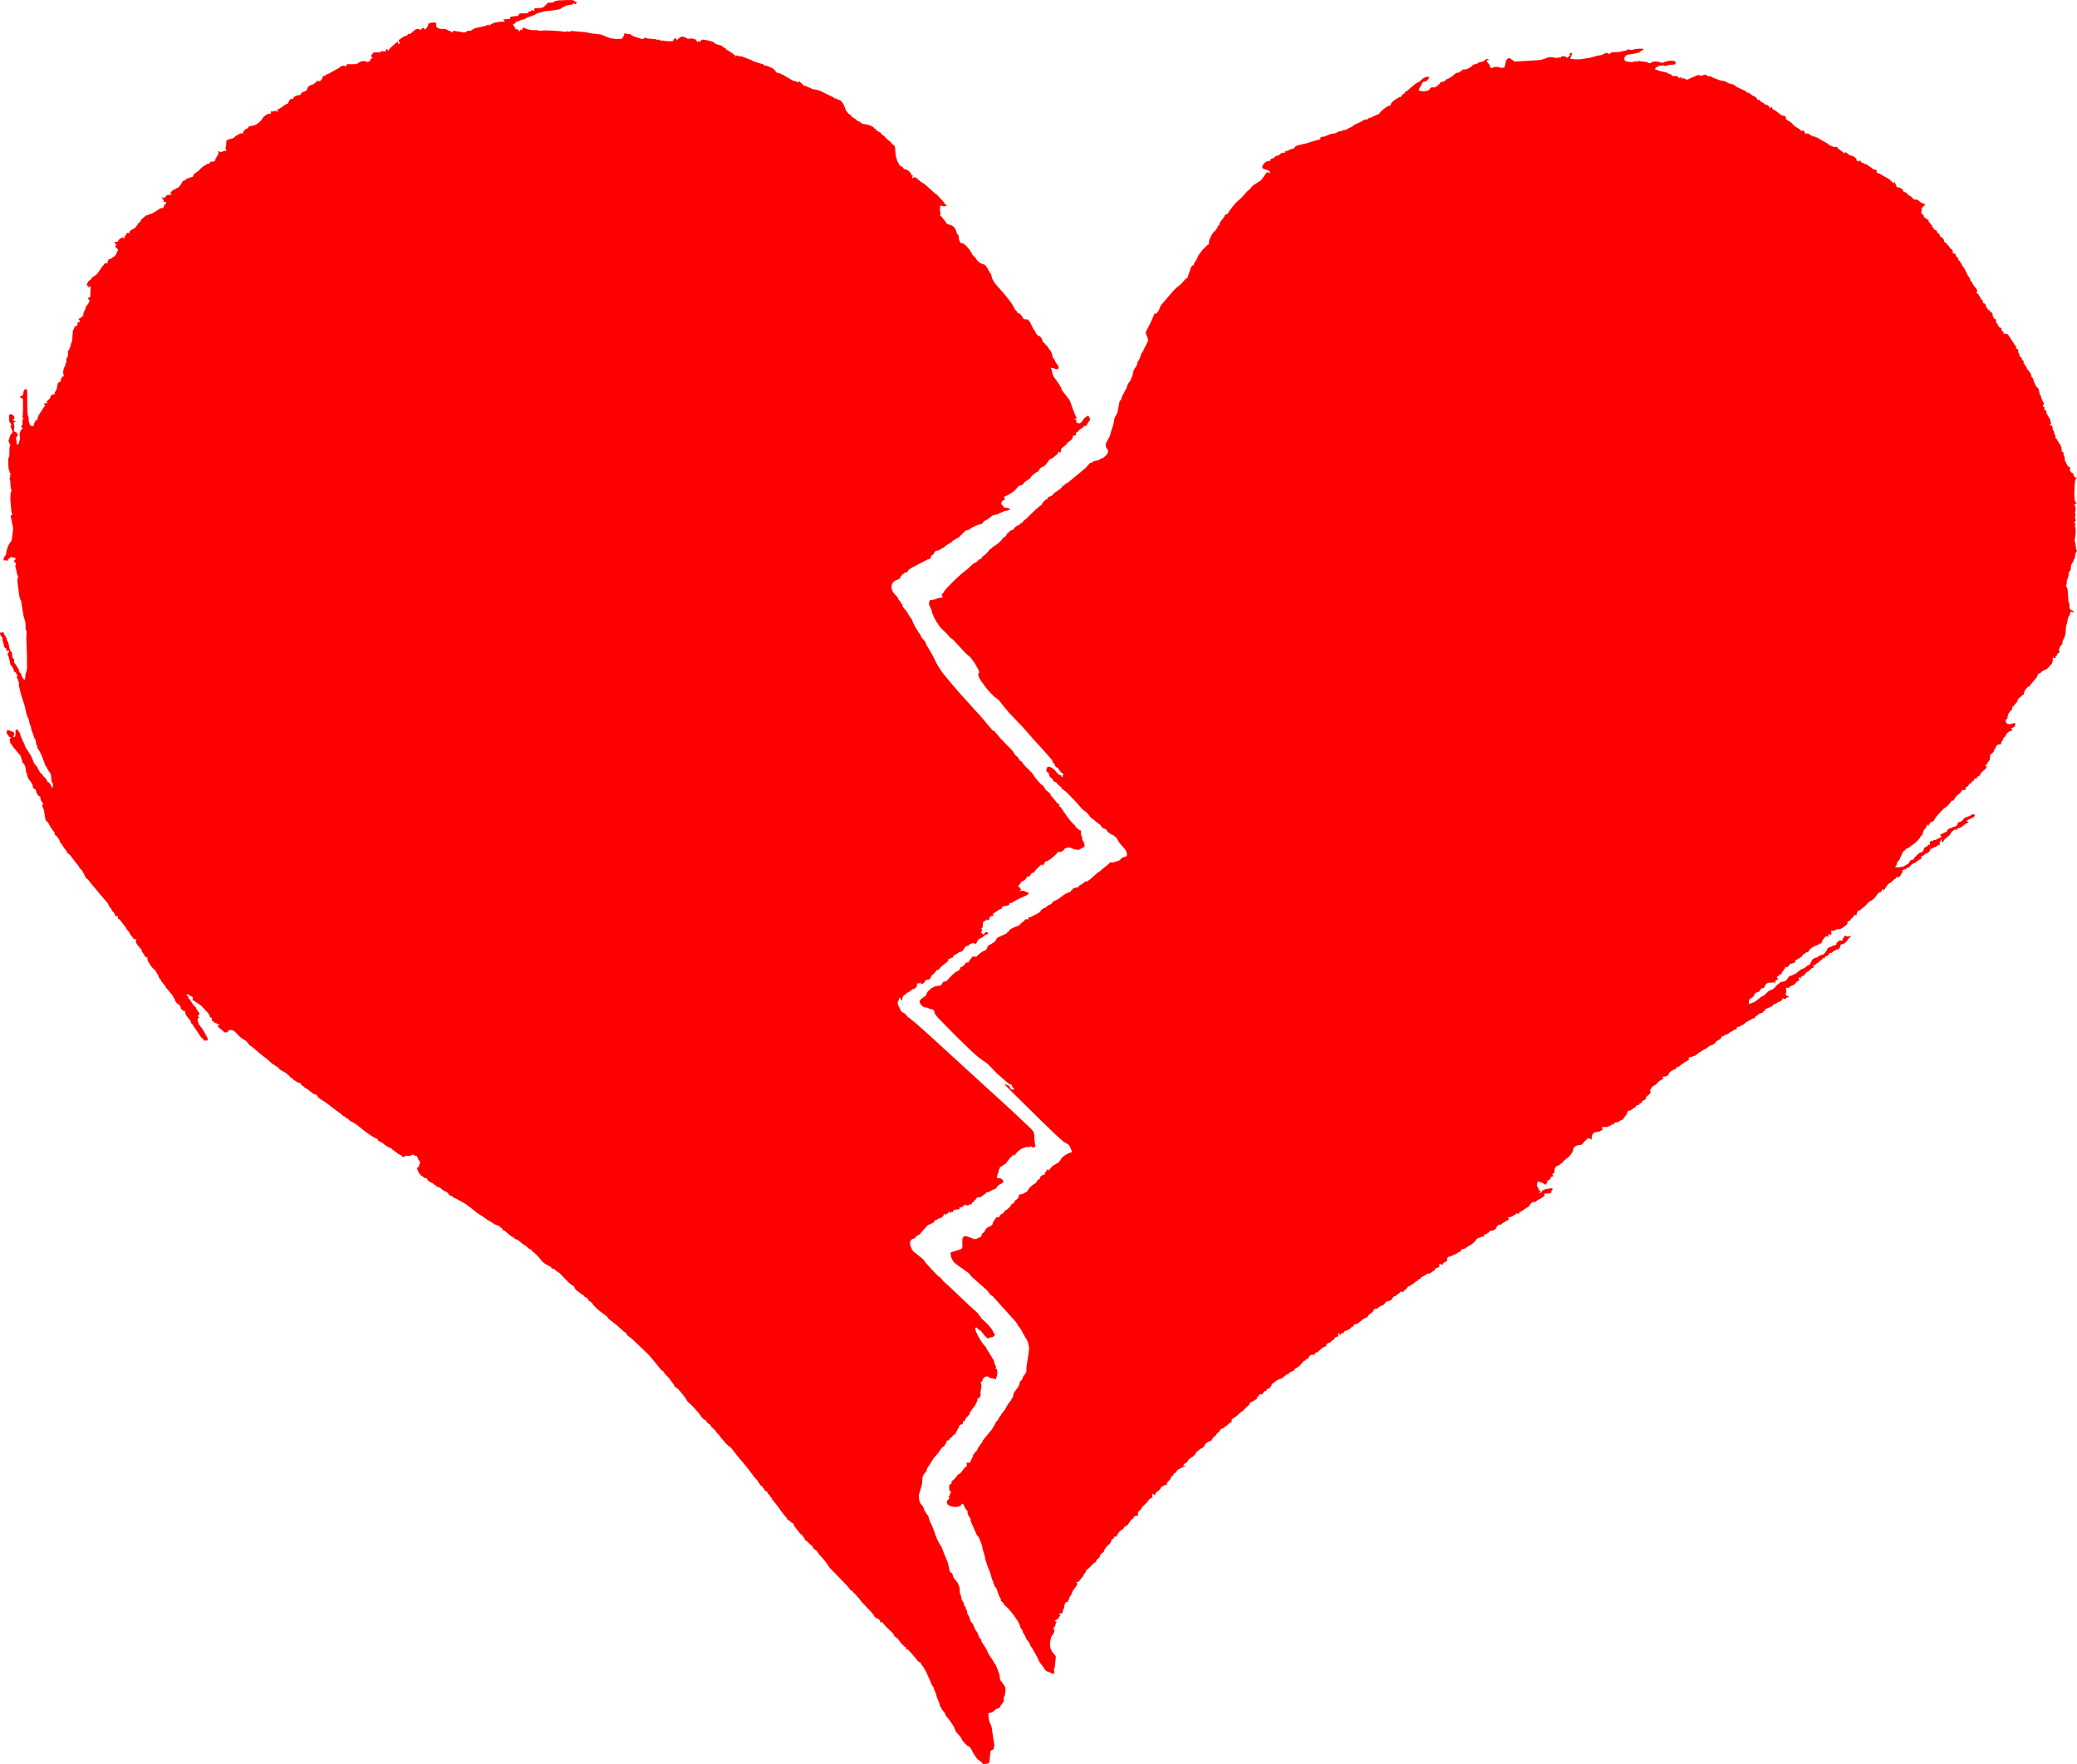 Broken Heart Transparent Background